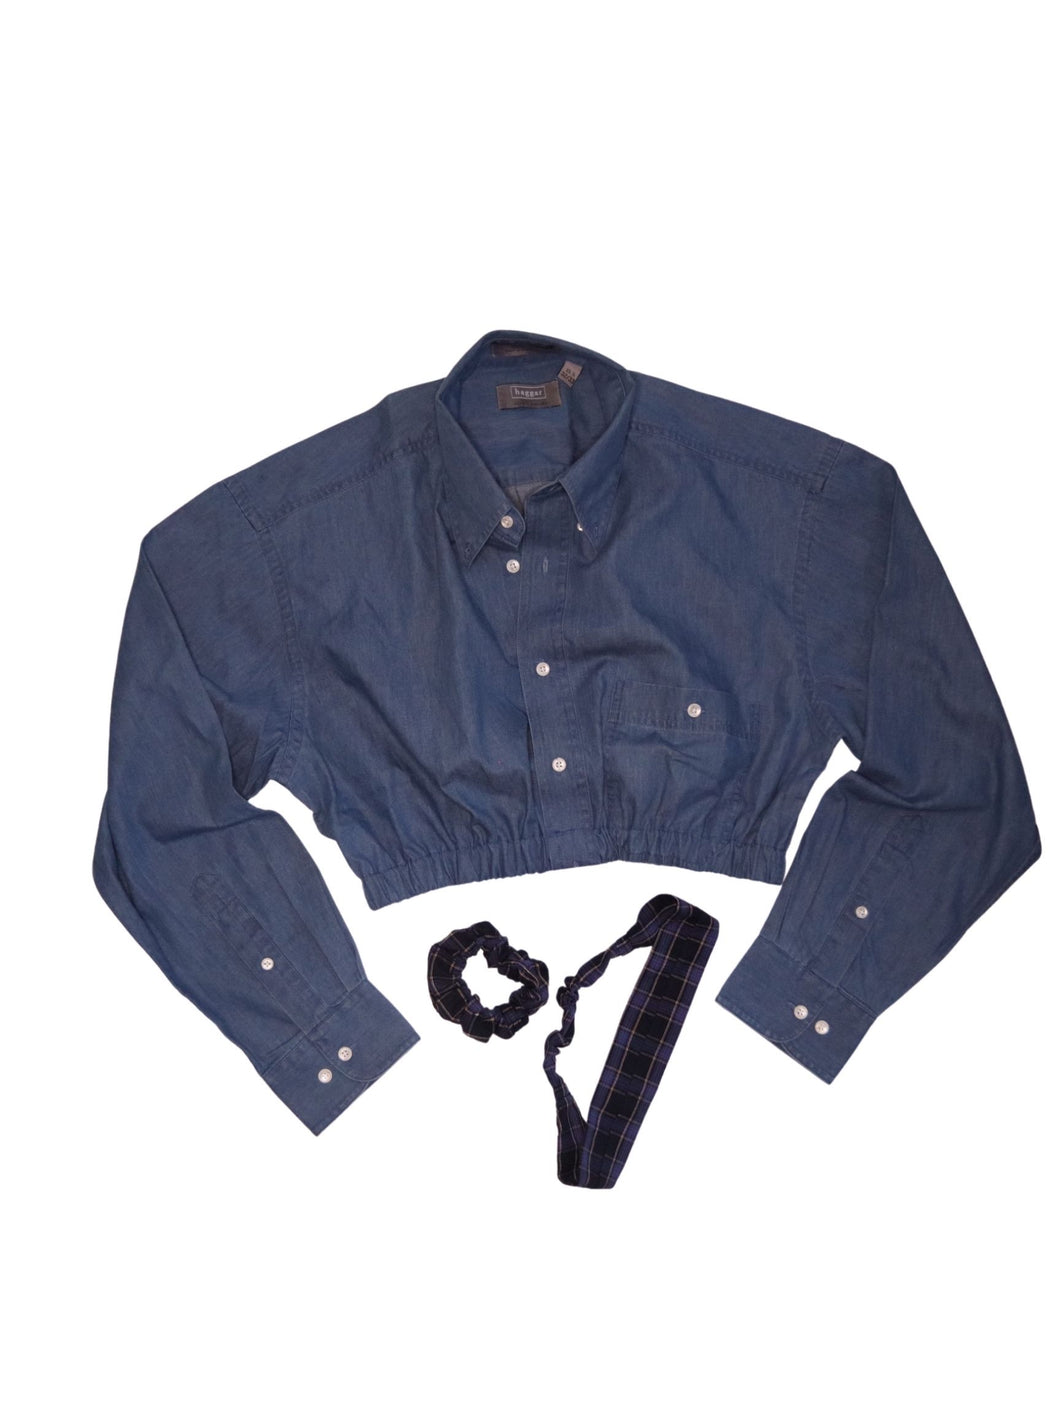 Reworked Denim button up